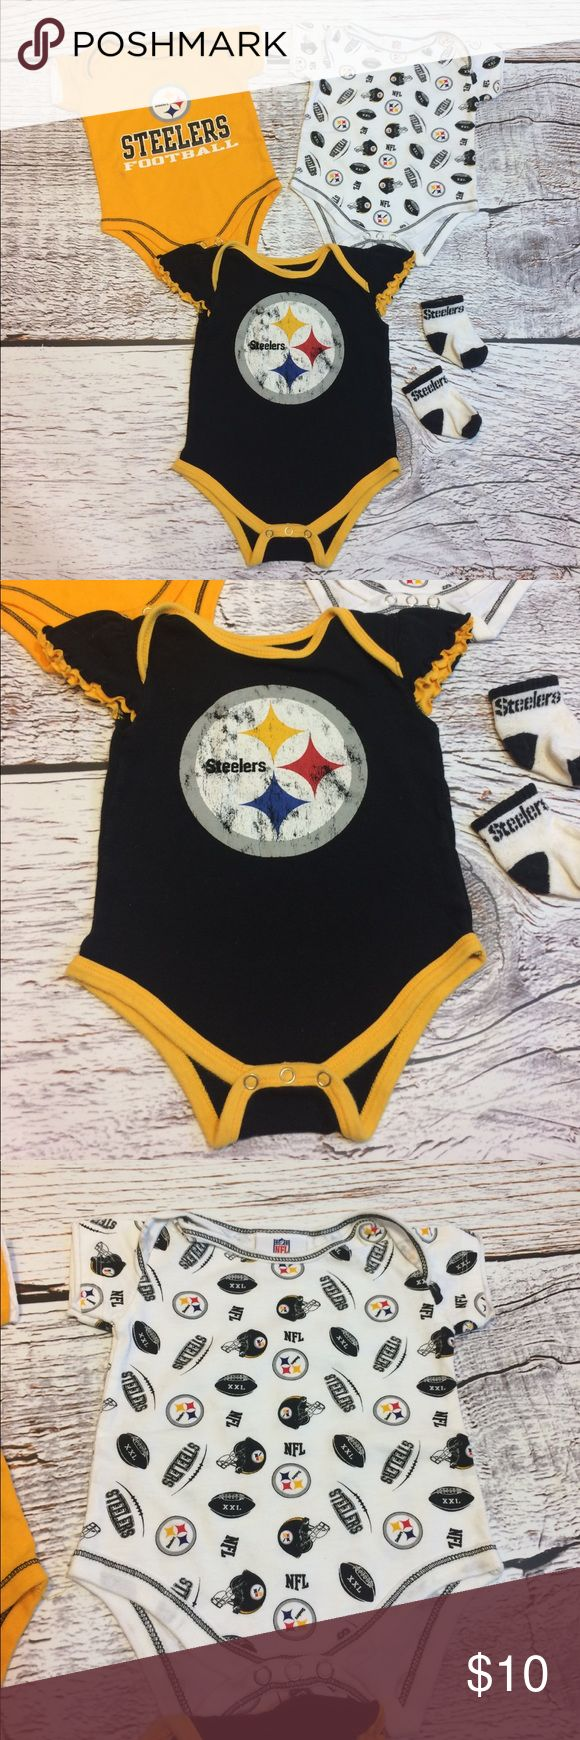 🏉 Pittsburgh Steelers Infant Lot Pittsburgh Steelers Infant Lot. All in VGUC-one untreated spot on yellow onesie(see picture). Bottom is 6/9 mo & top two are 0/3 but run big(see last picture). Super cute for any future Steelers fan! One Pieces